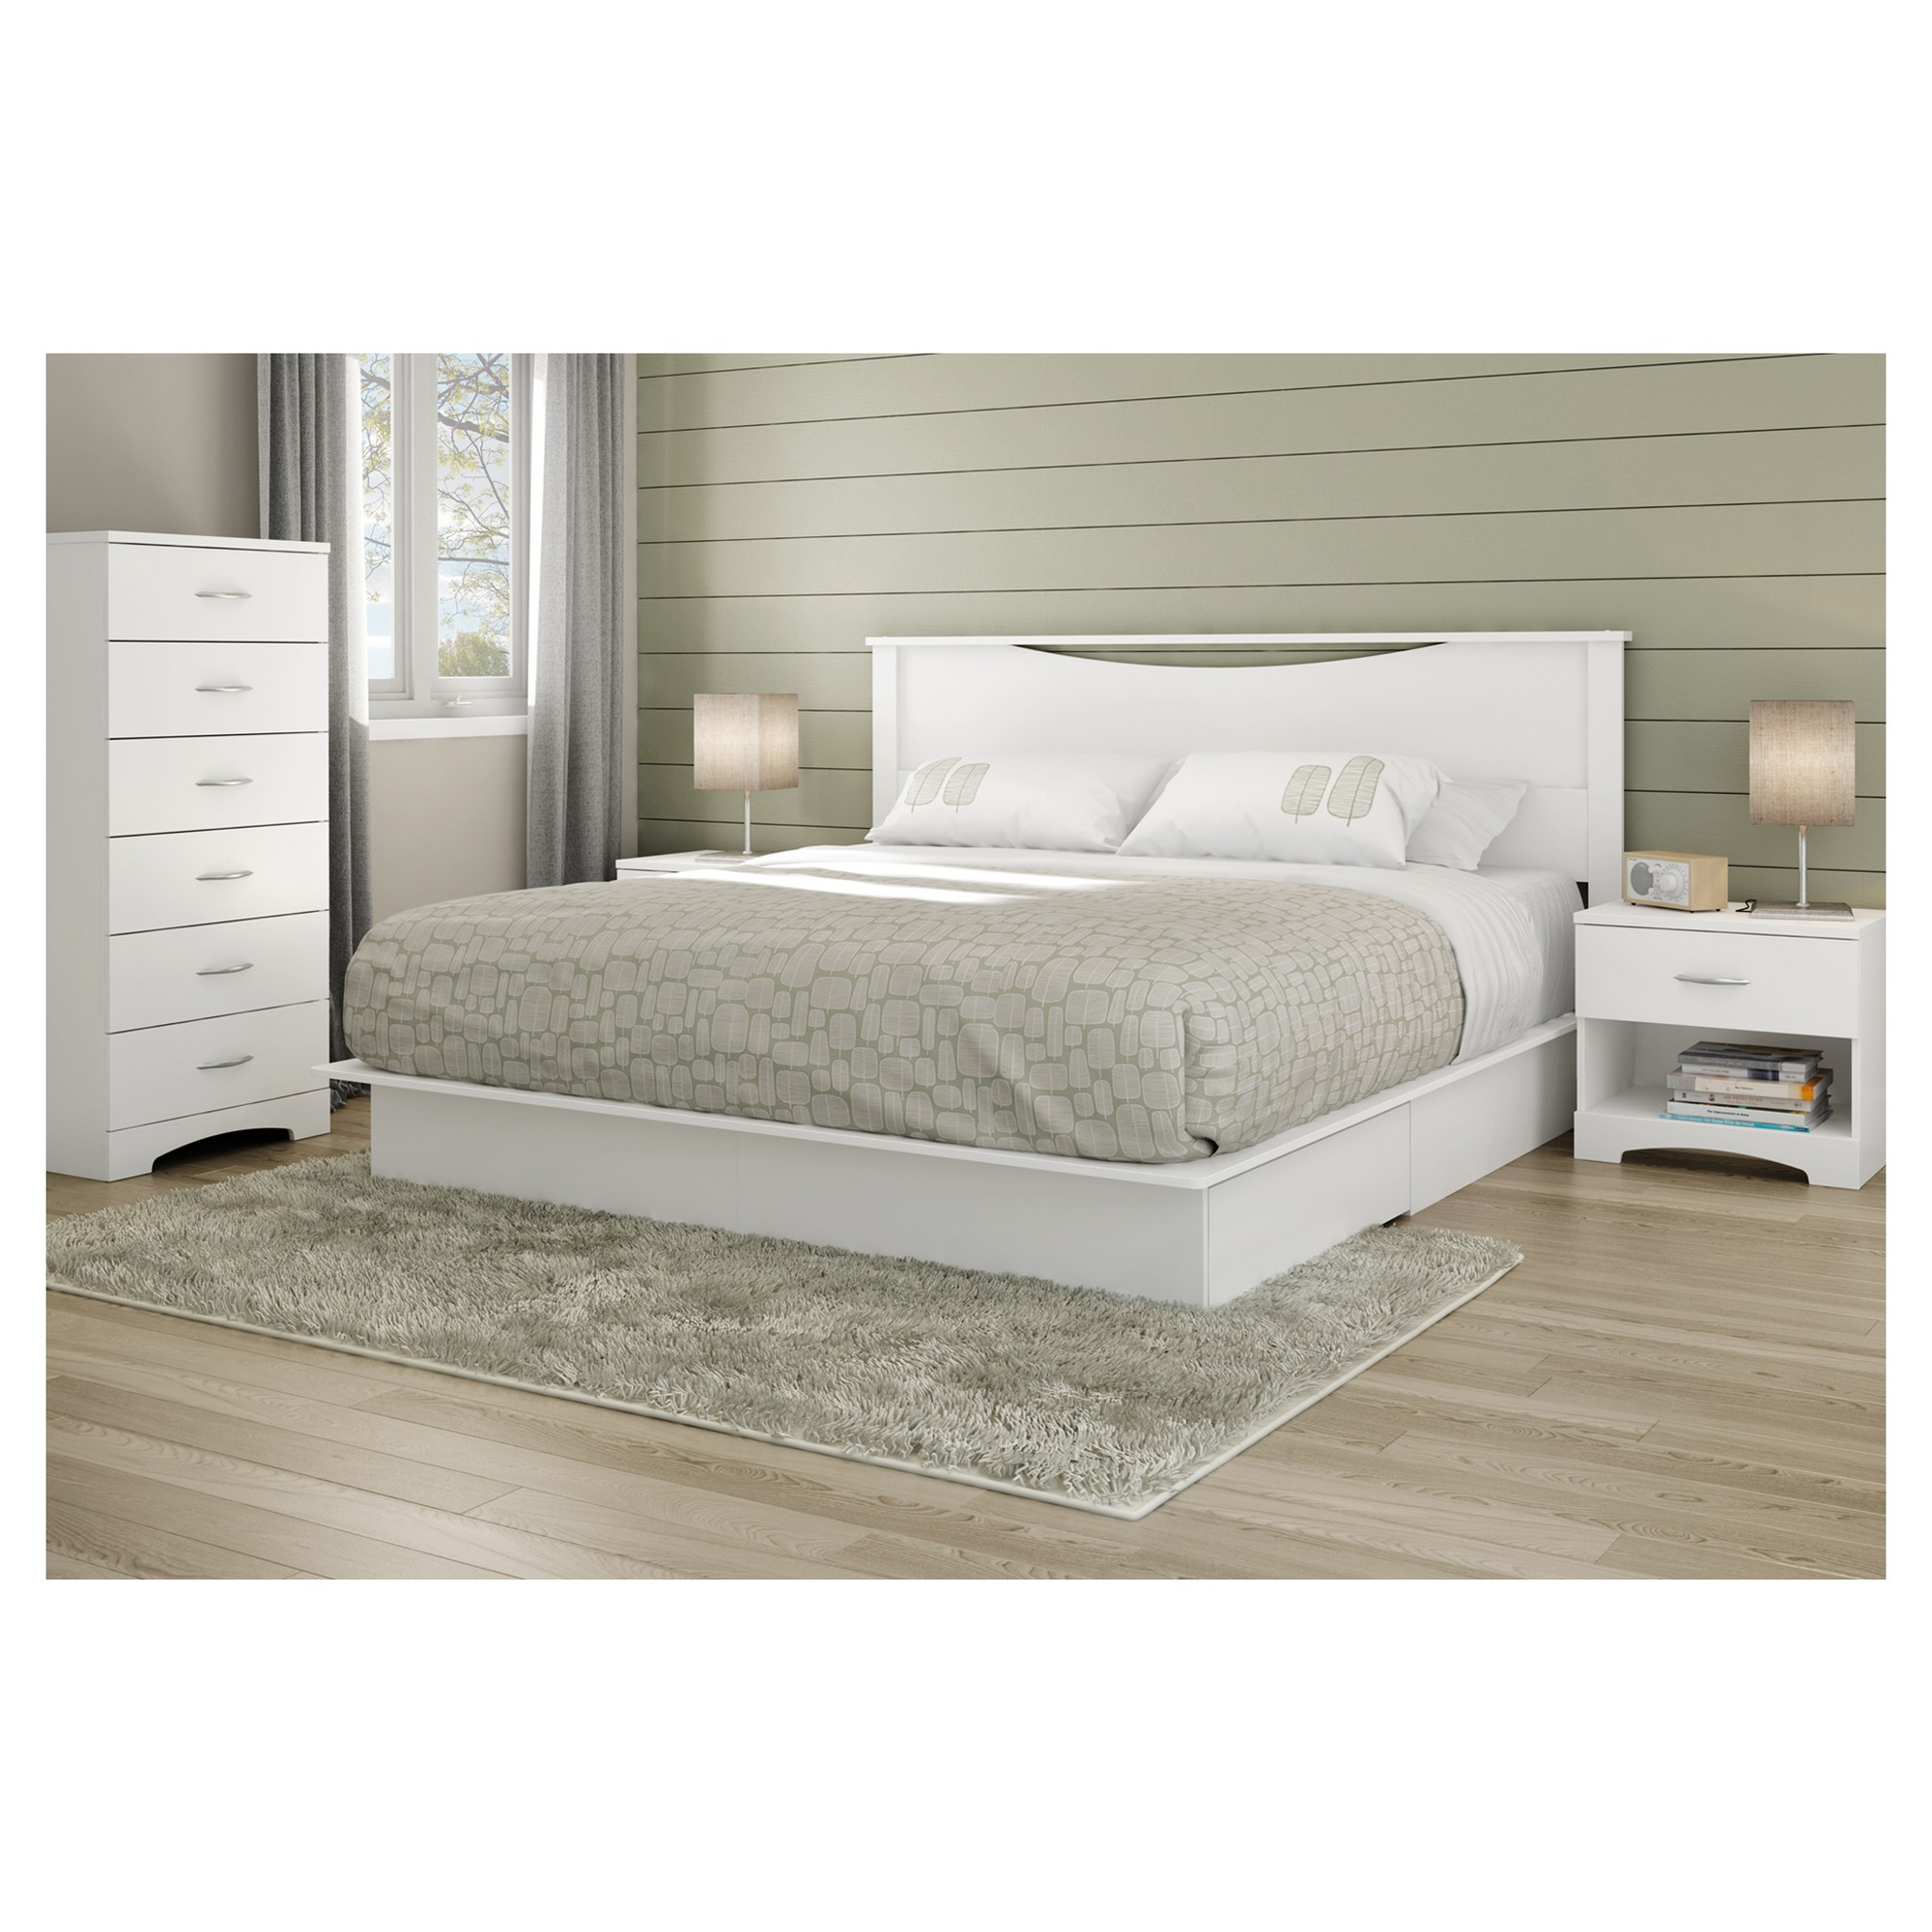 Step One Platform Bed King Pure White South Shore Platform Bed With Drawers Bed With Drawers Platform Bed